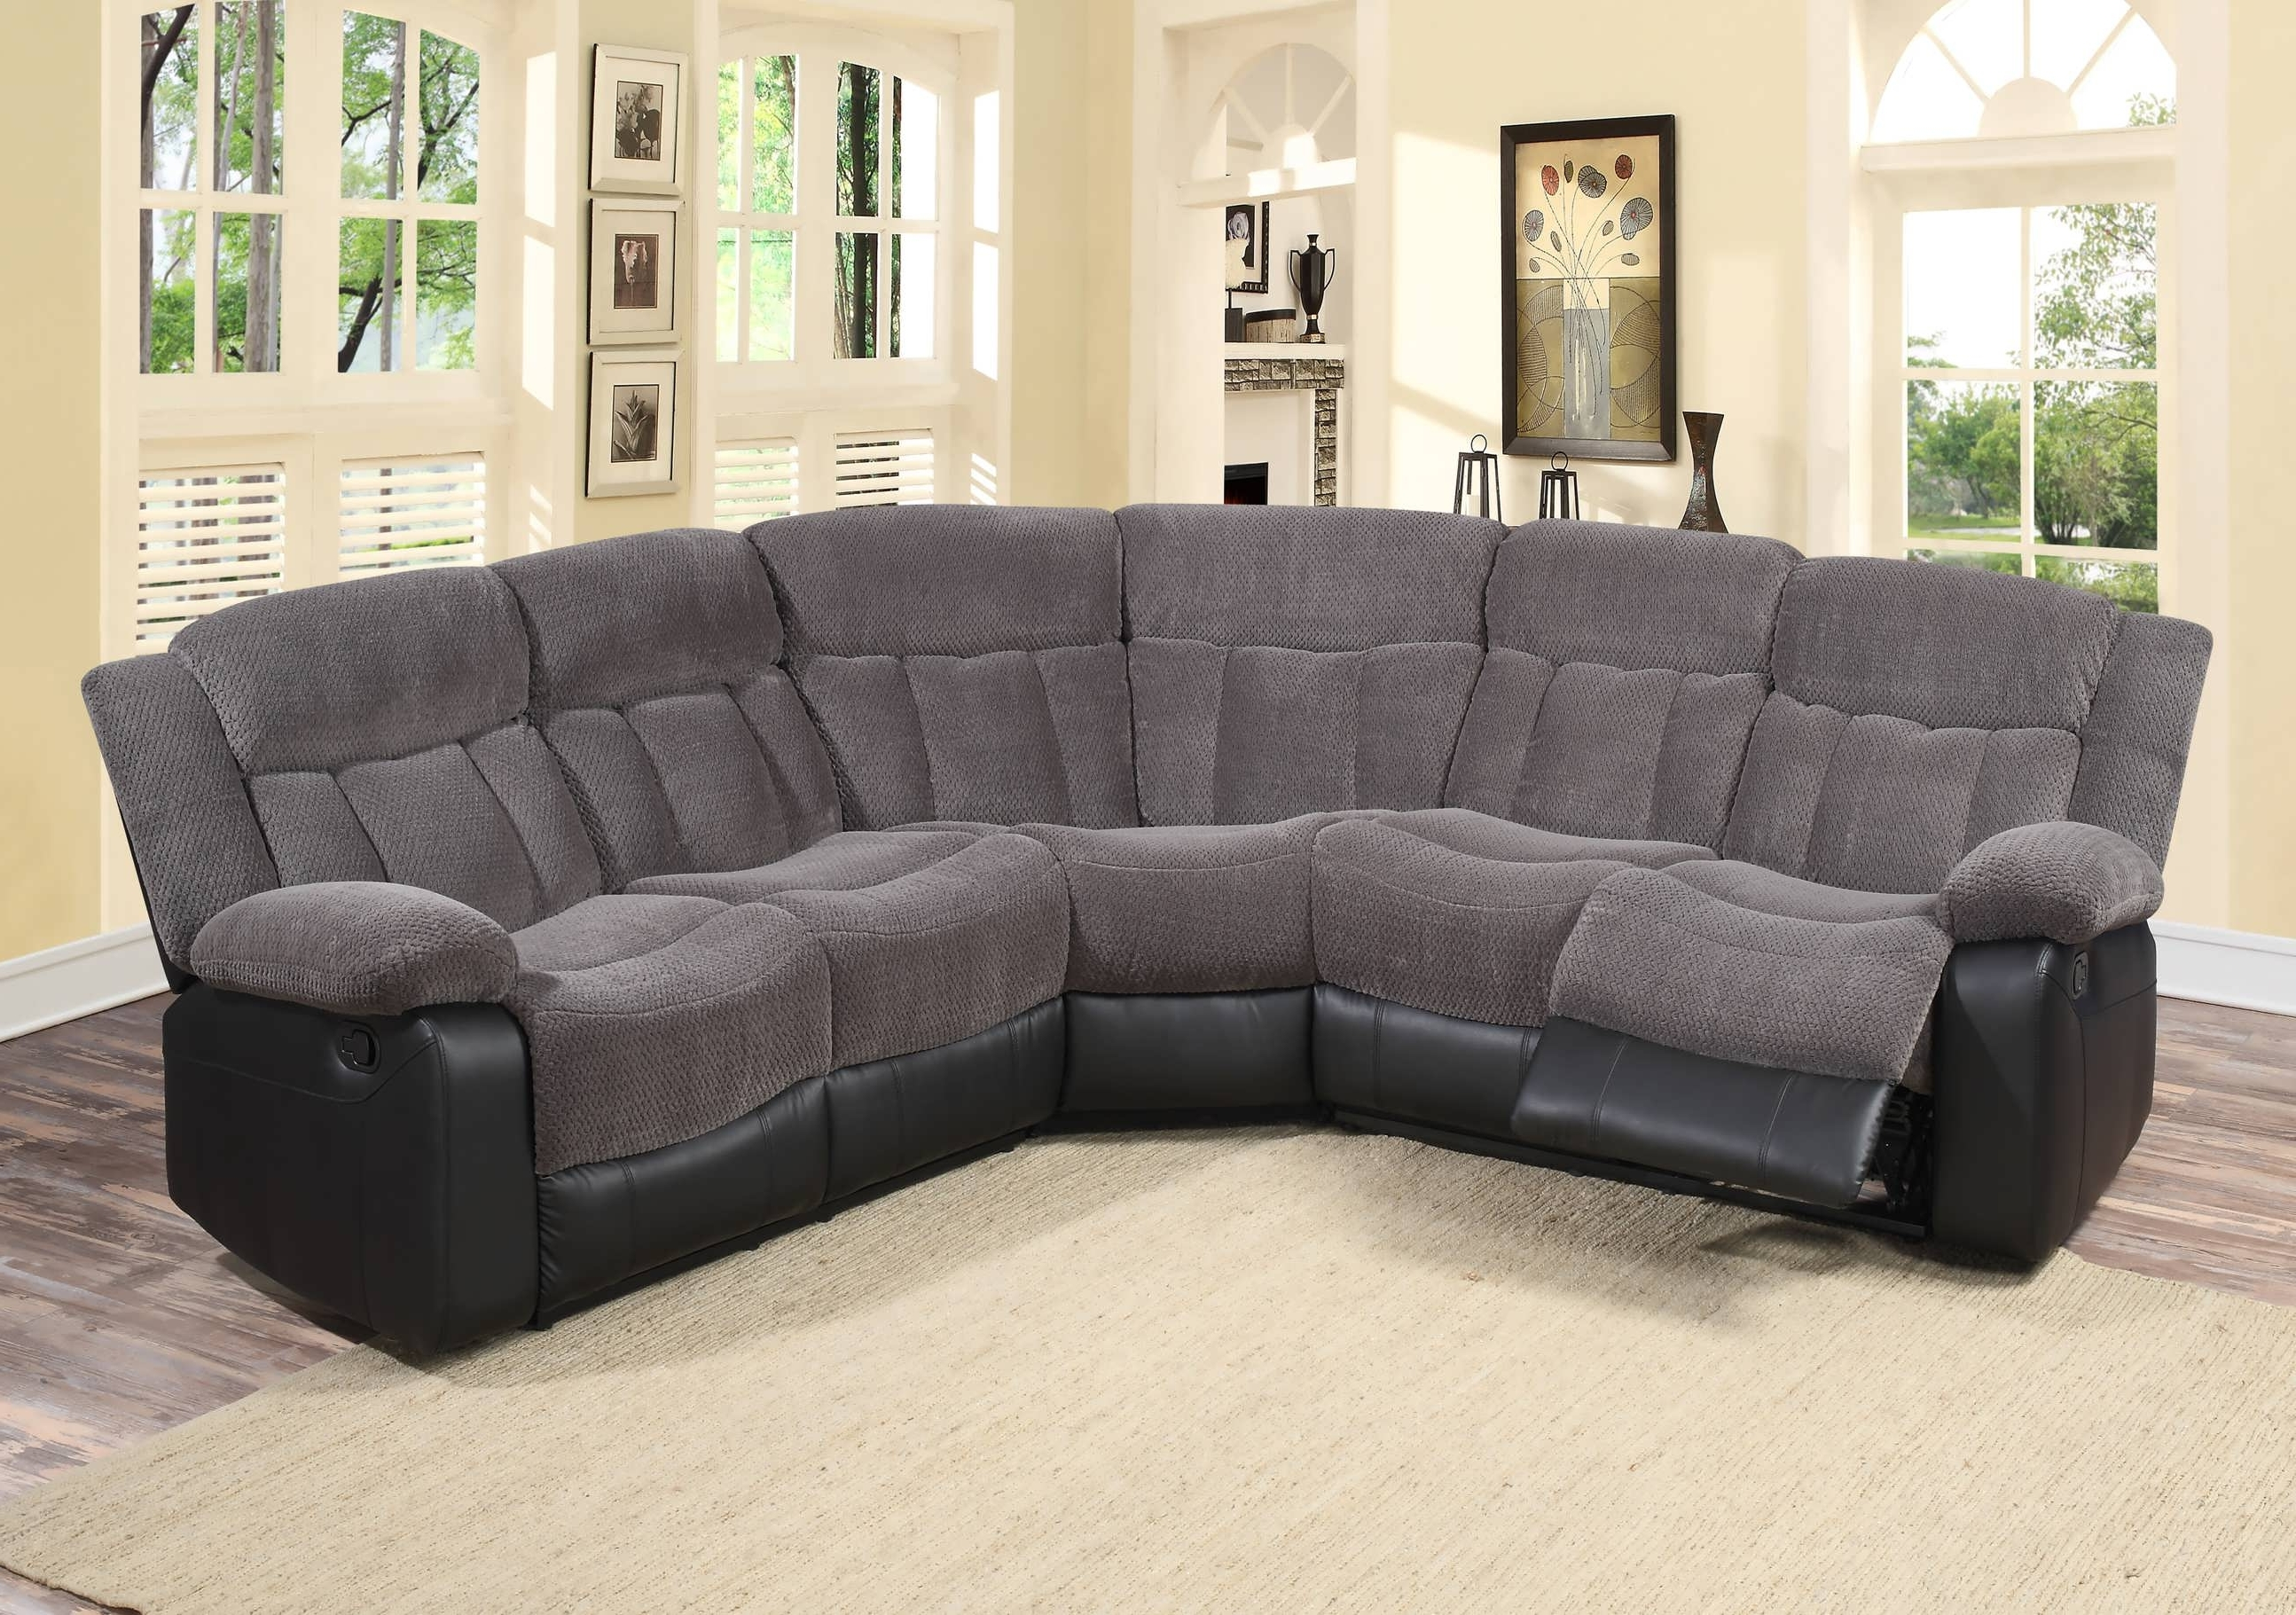 Most Recent Sofa : U Shaped Sectional Leather Sectionals For Sale Cheap For Reclining Sectionals With Chaise (View 5 of 15)